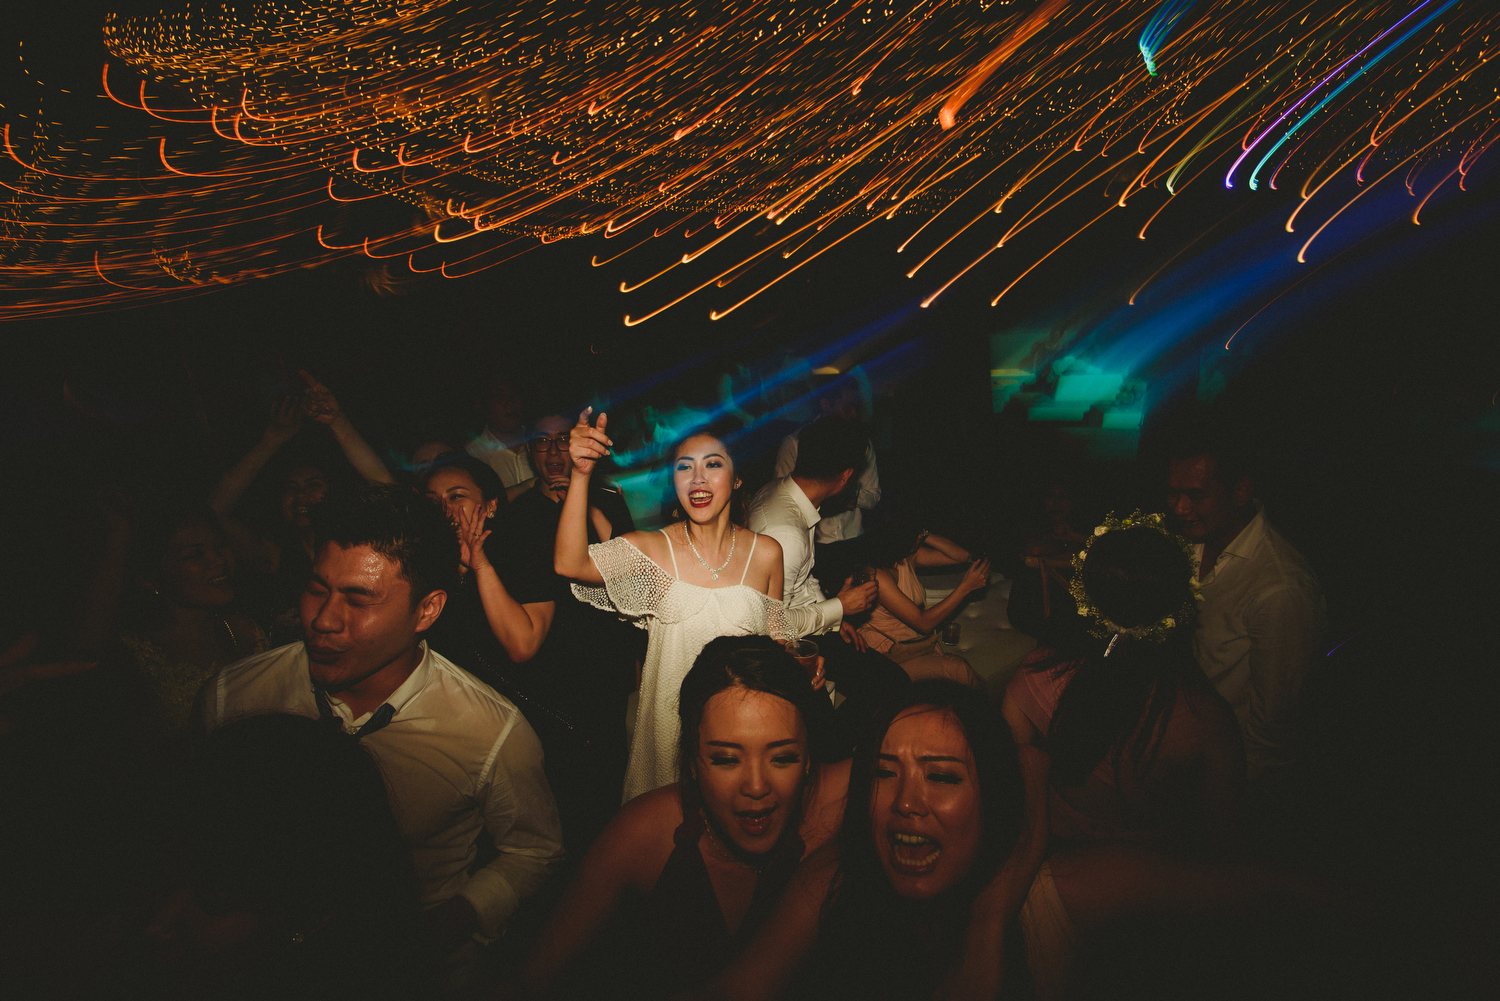 wedding-helise-risky-weddinginbali-khayanganestate-diktatphotography-baliweddingdestination-baliphotographer-160